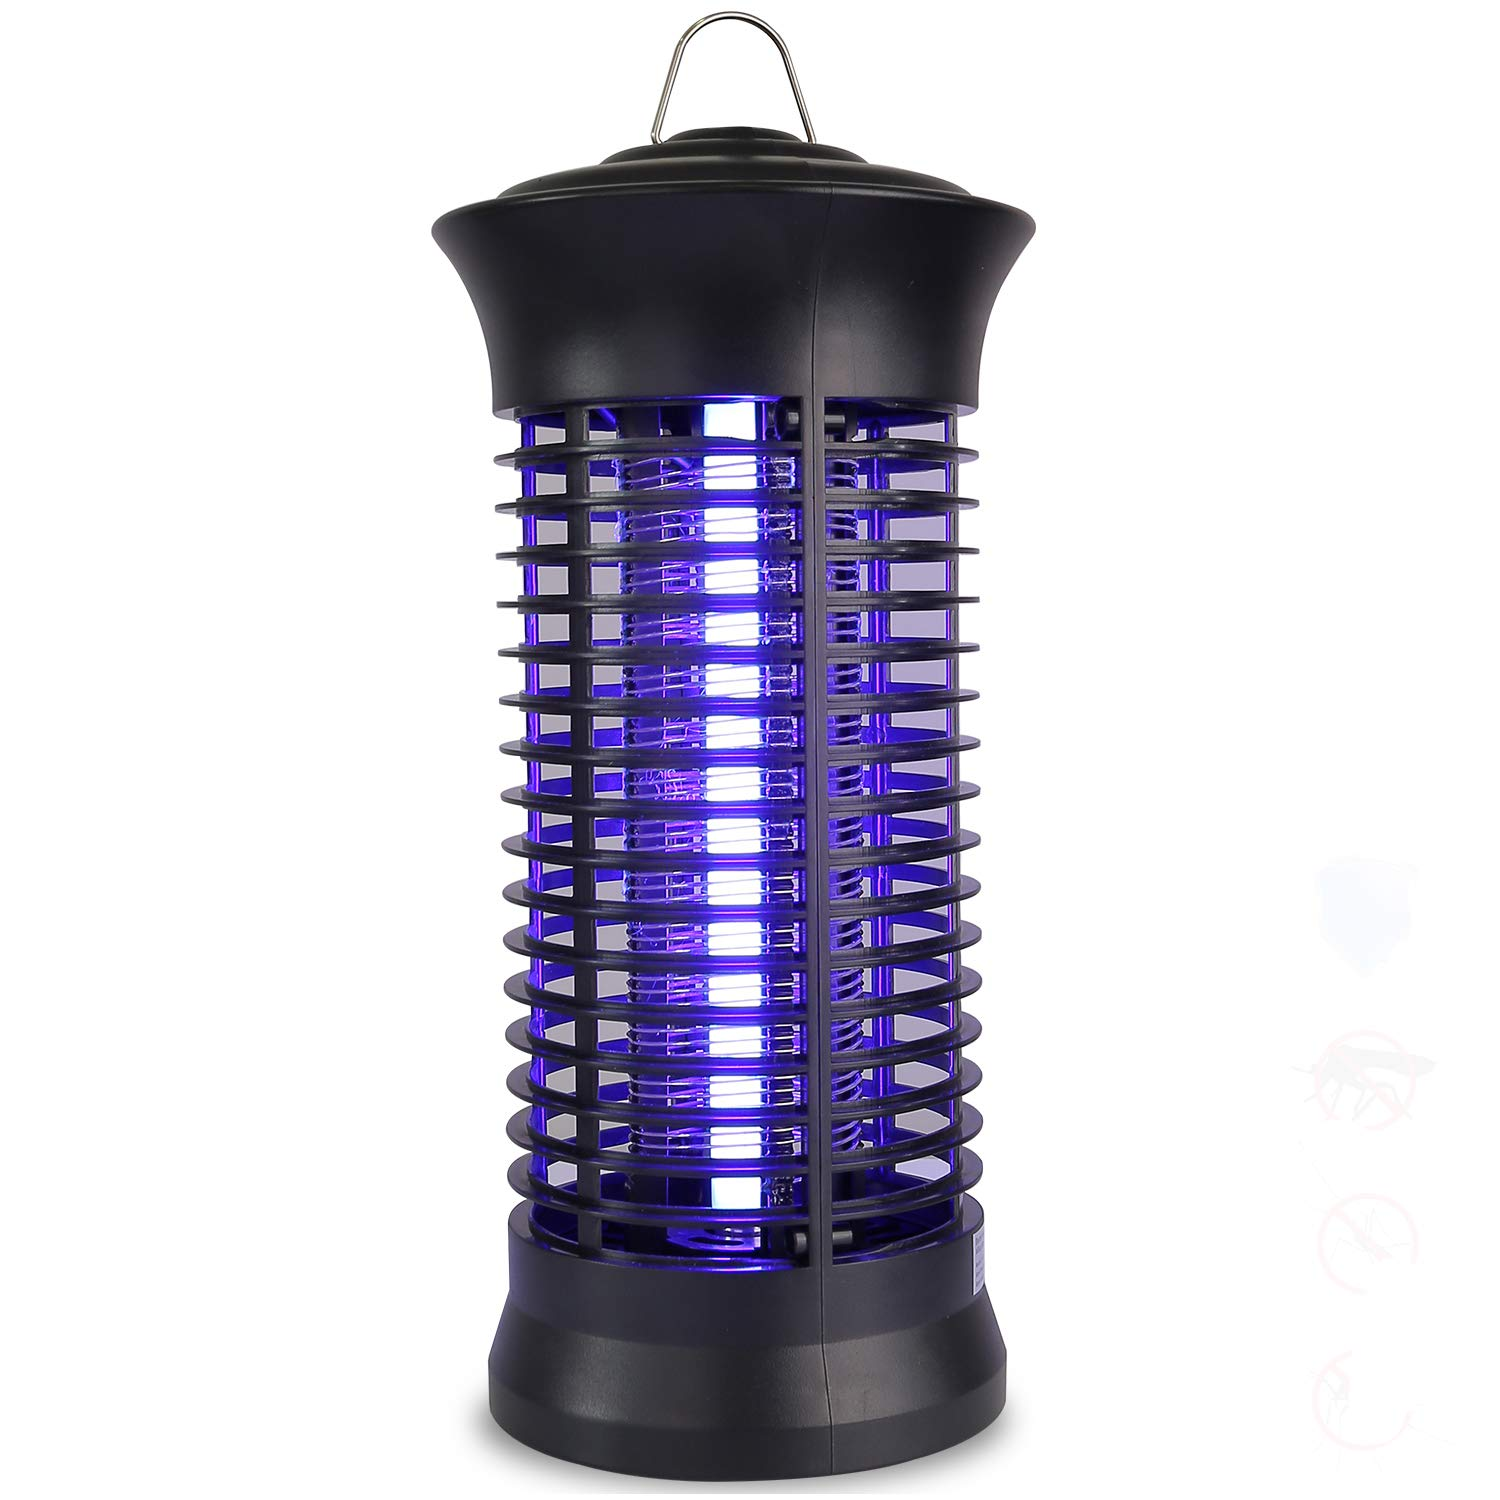 occer Bug Zapper, Electric Indoor Mosquito Killer Trap,Portable Insects Fly Zappers,Catcher,with 360°UV Light Large Coverage,Suitable for Bedroom,Living Room,Office,Kitchen,Patio,Yard